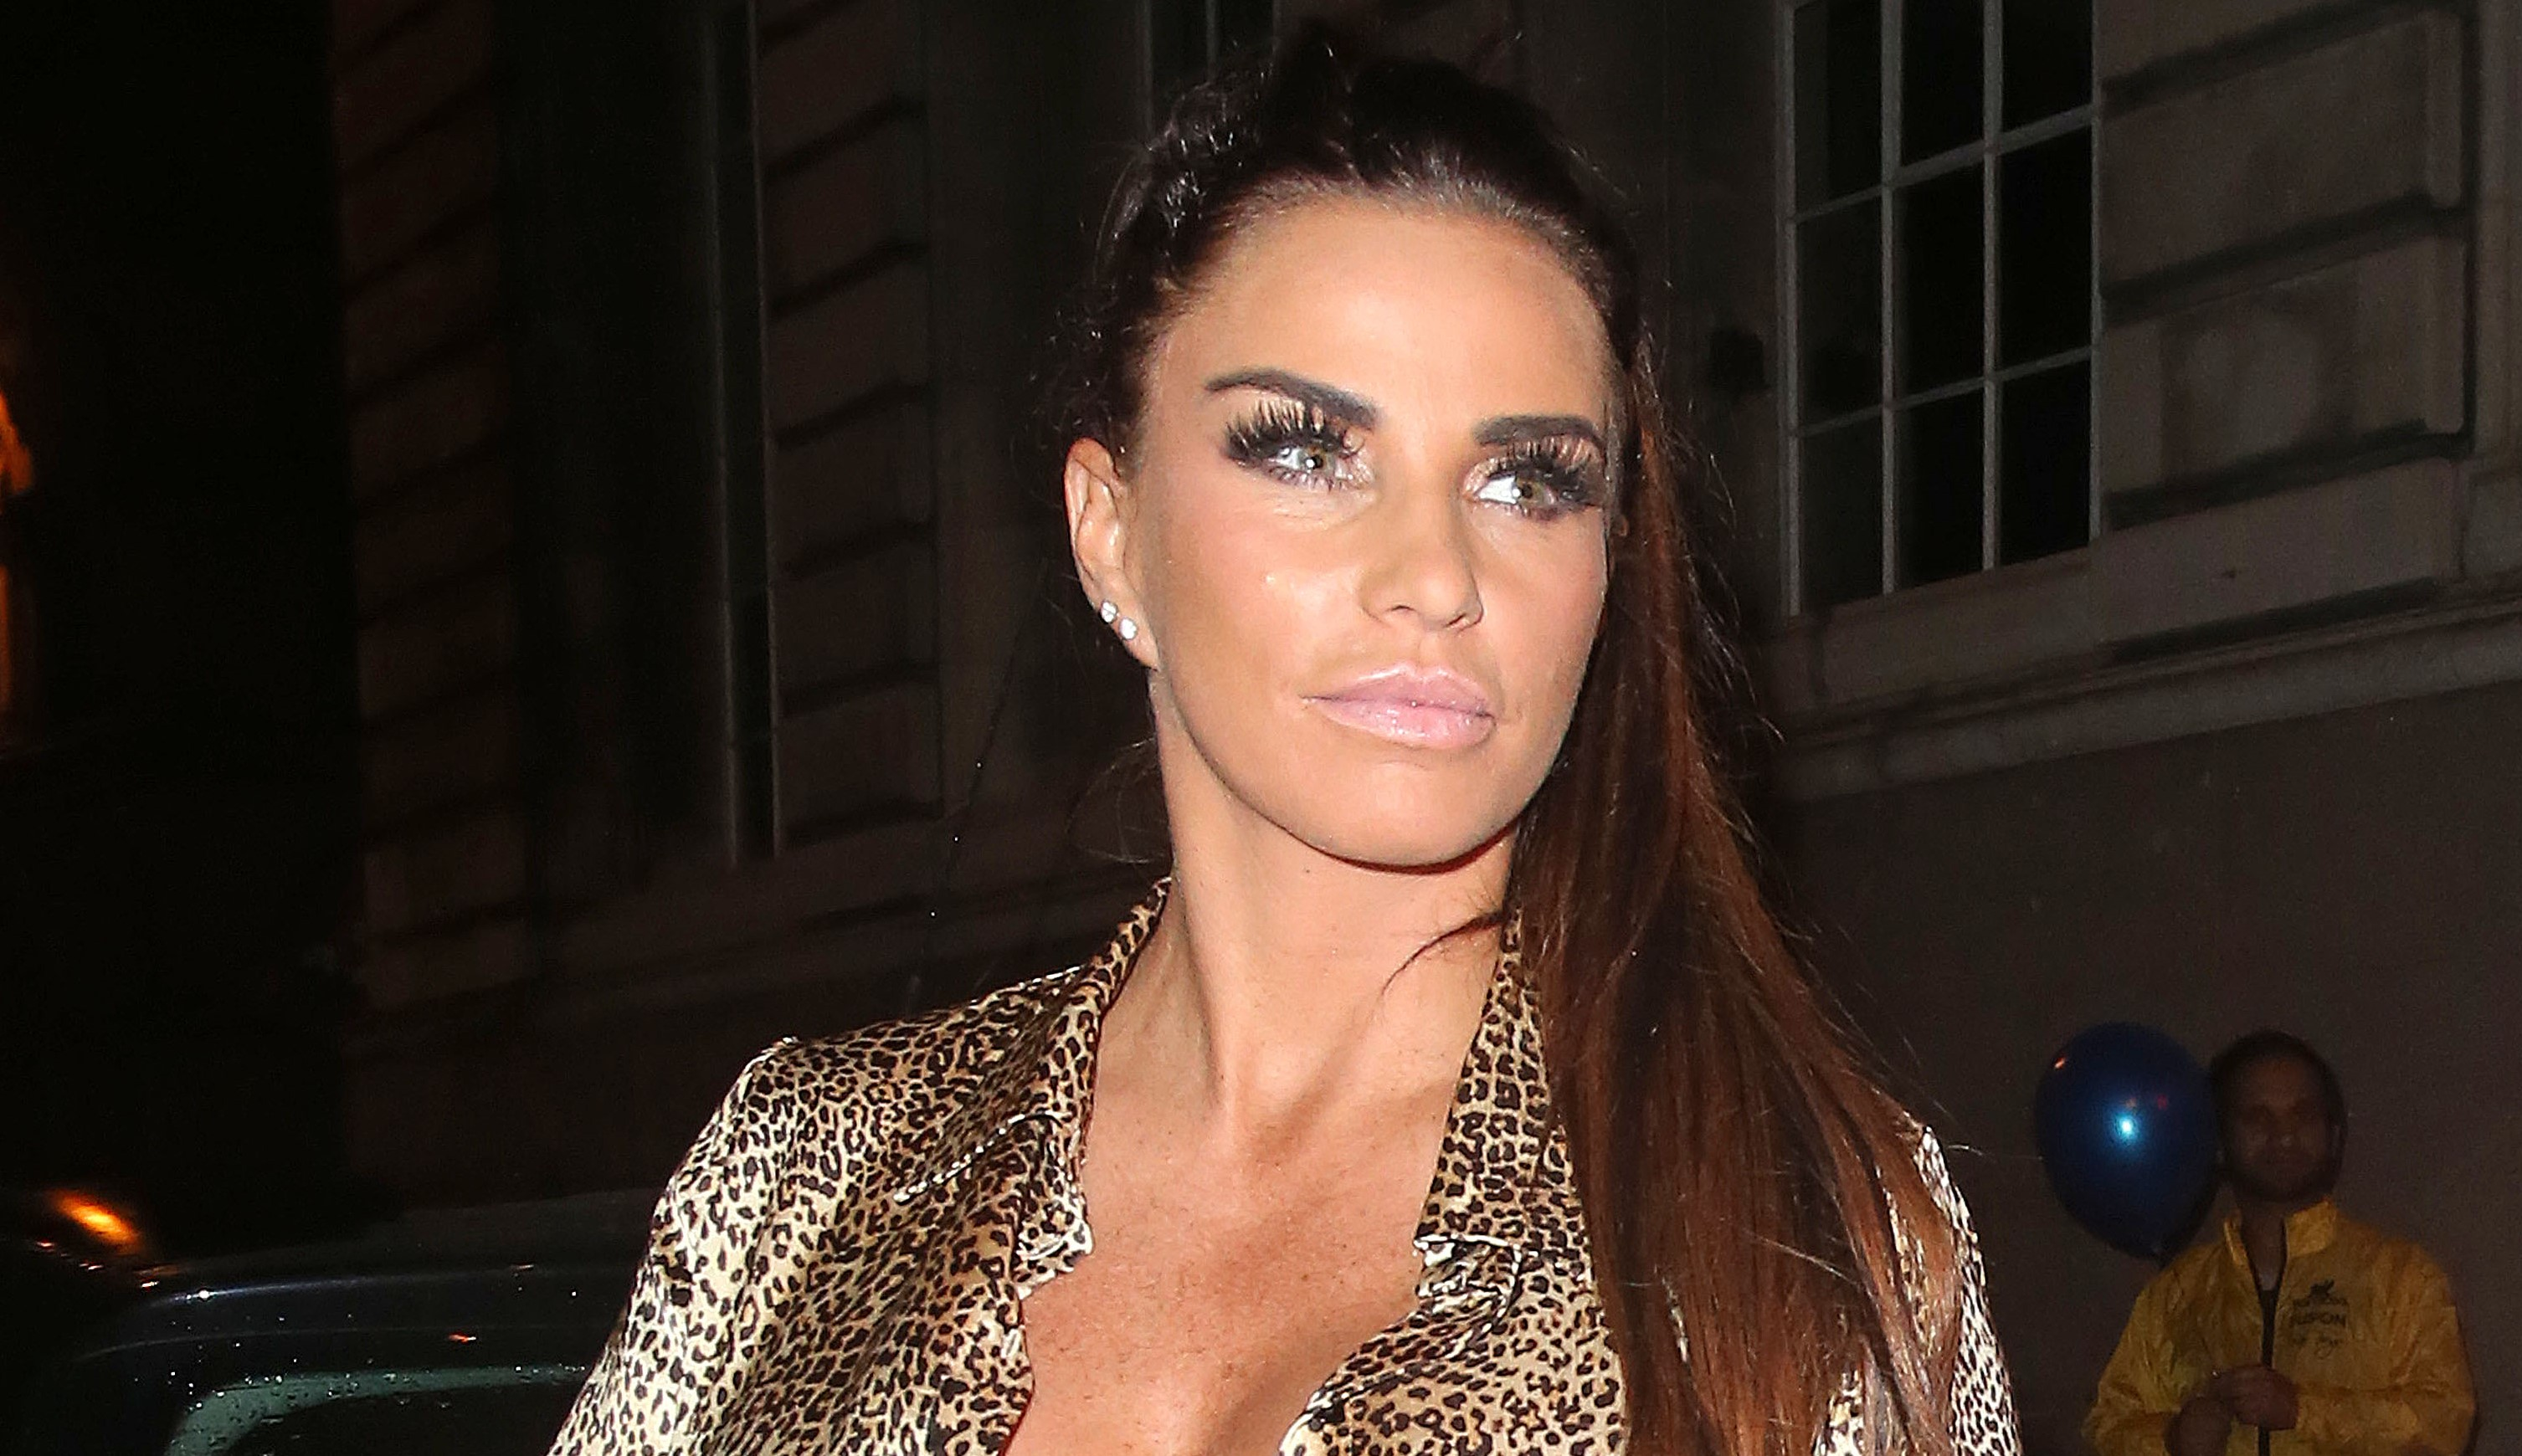 Katie Price to stand trial today accused of foul-mouthed rant at her ex's girlfriend